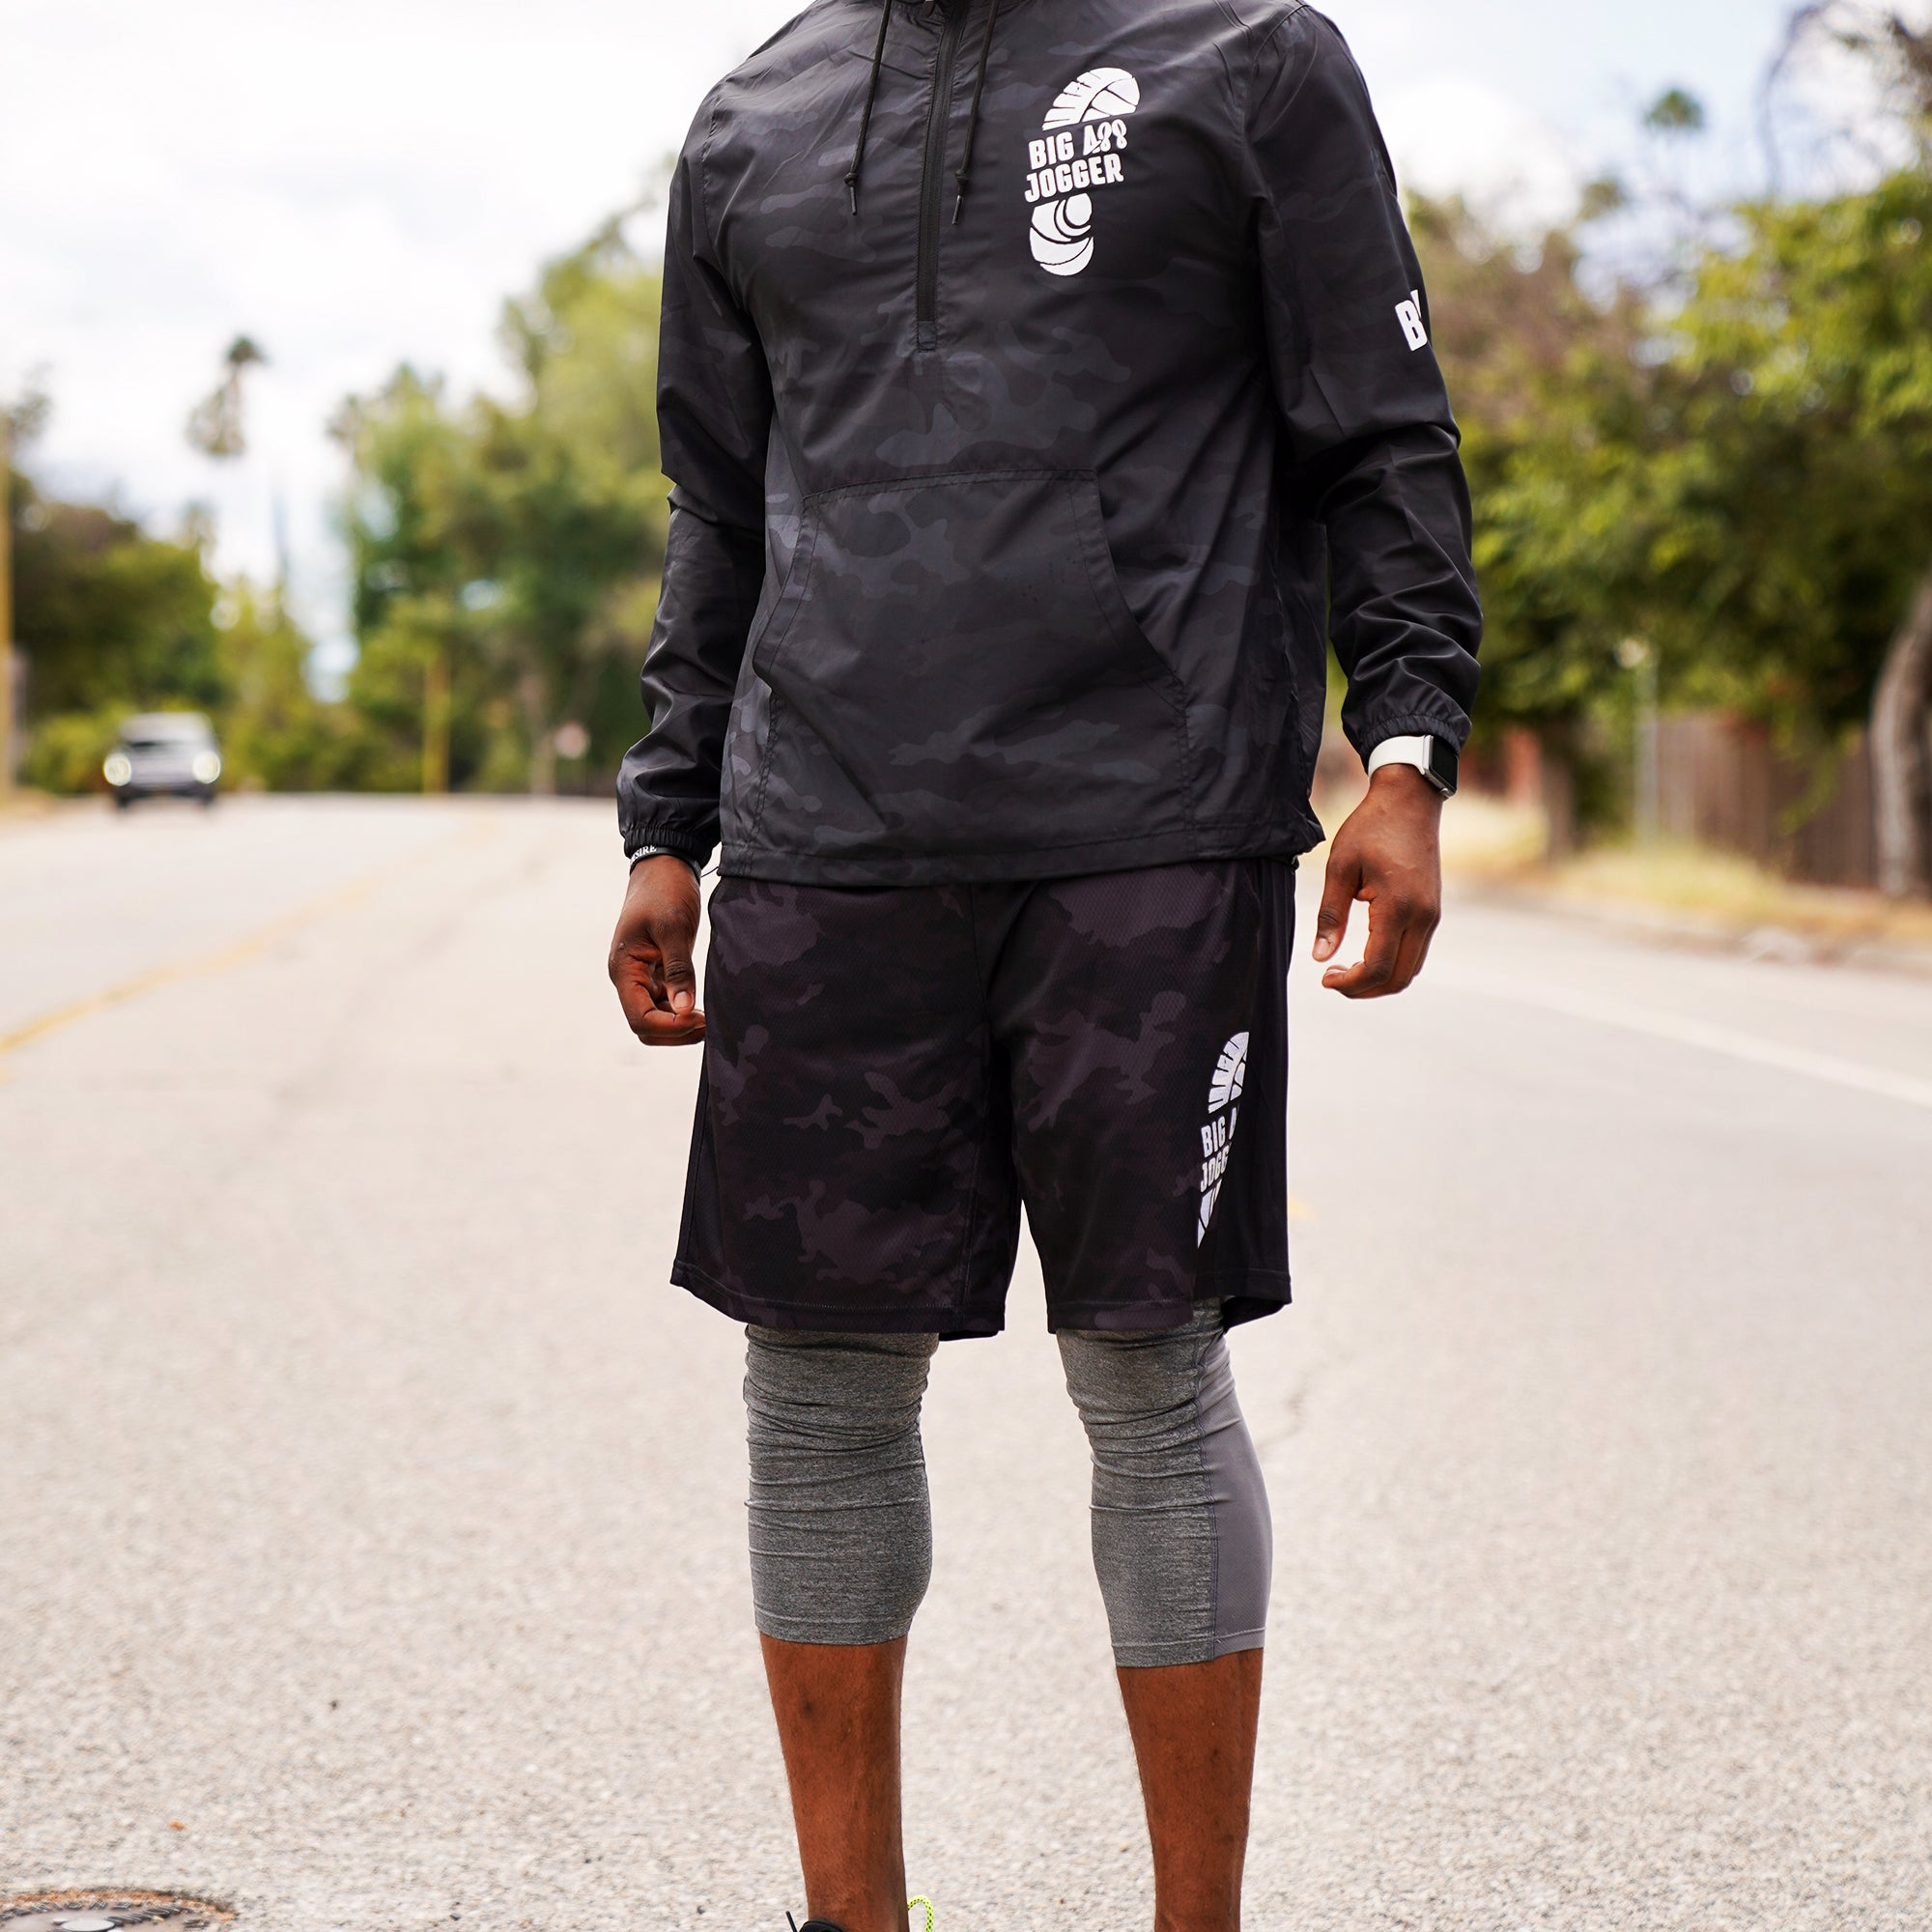 Stride Training Shorts with Pocket